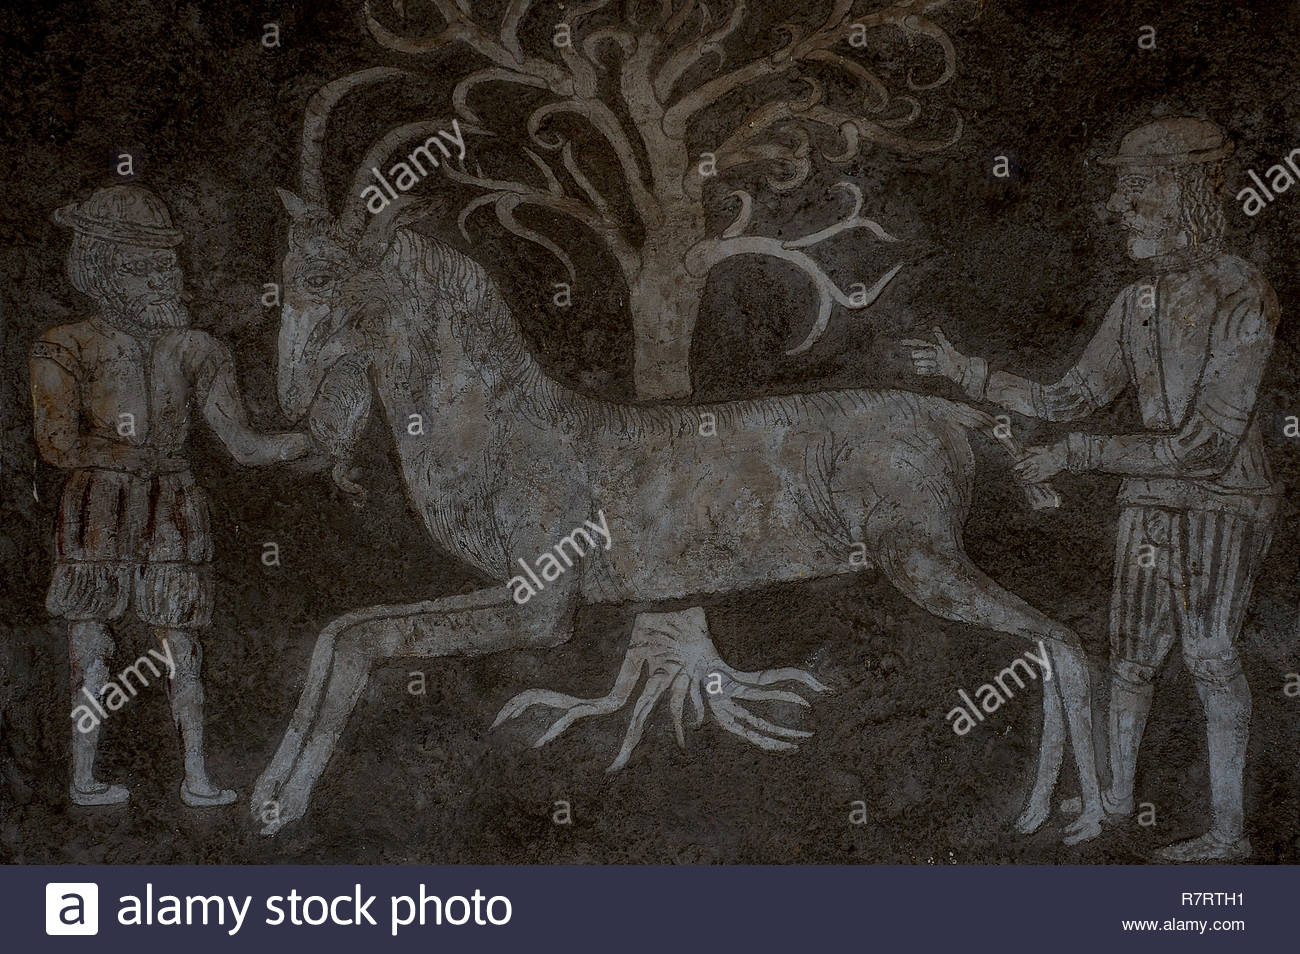 Slavonice, South Bohemia, Czech Republic: restored rustic sgraffito by door of medieval house rebuilt c.1550 of 2 men holding horned & bearded goat. - Stock Image